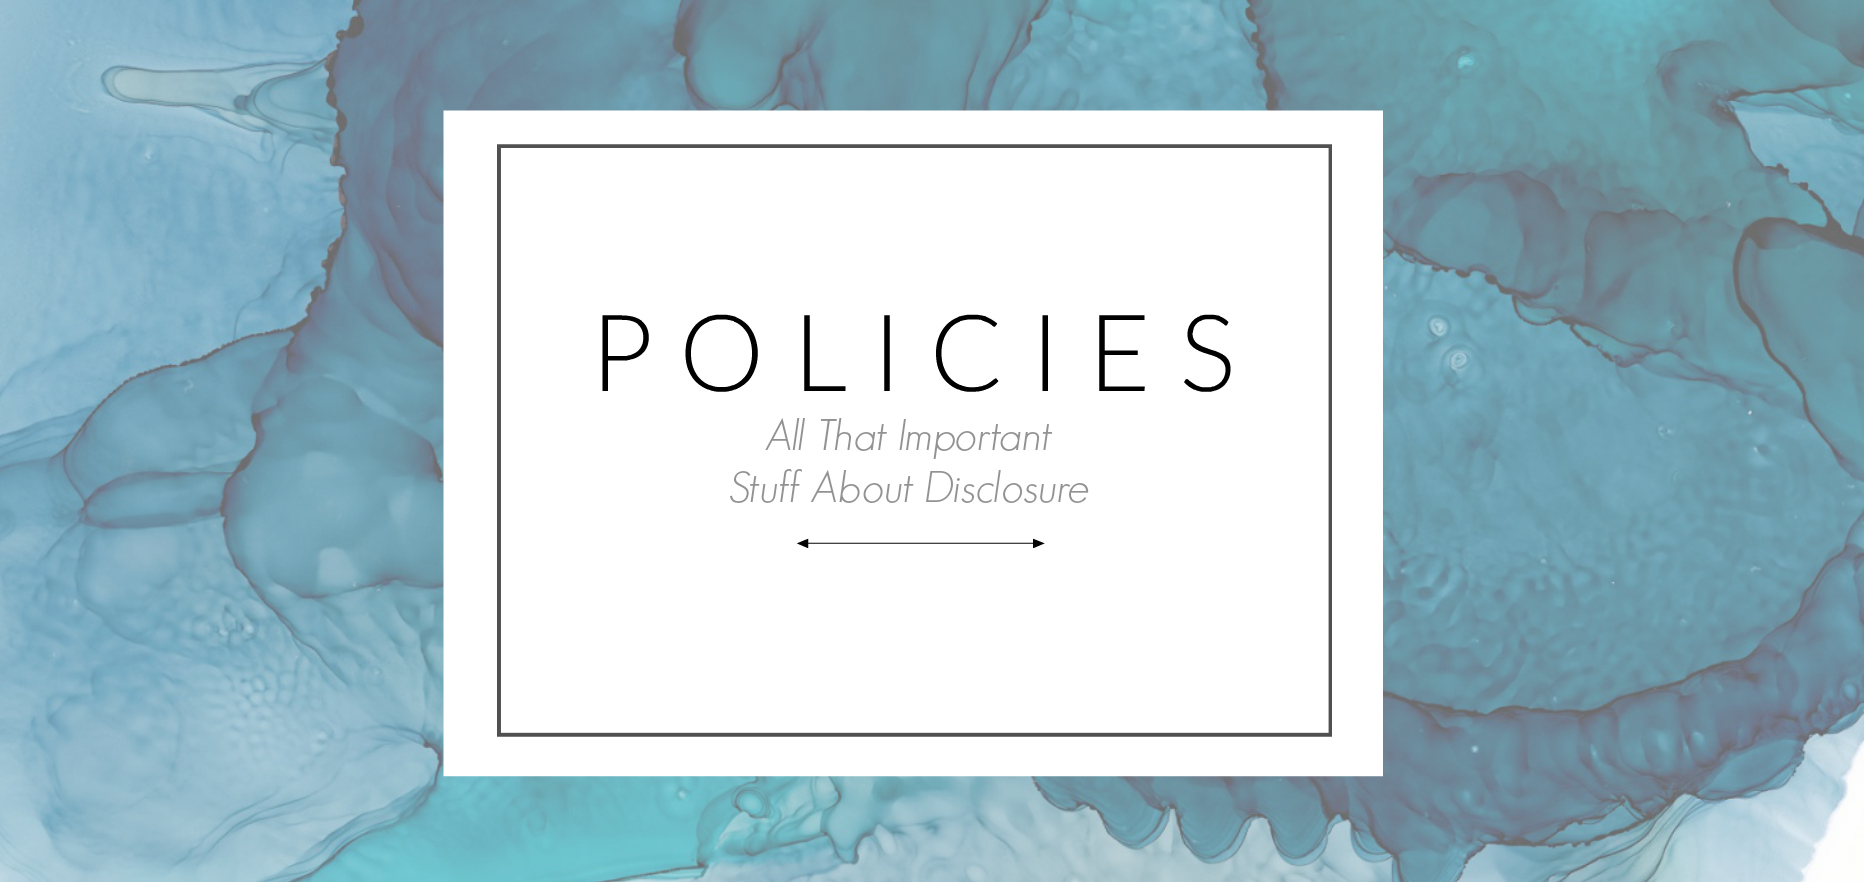 Policies and Disclosure